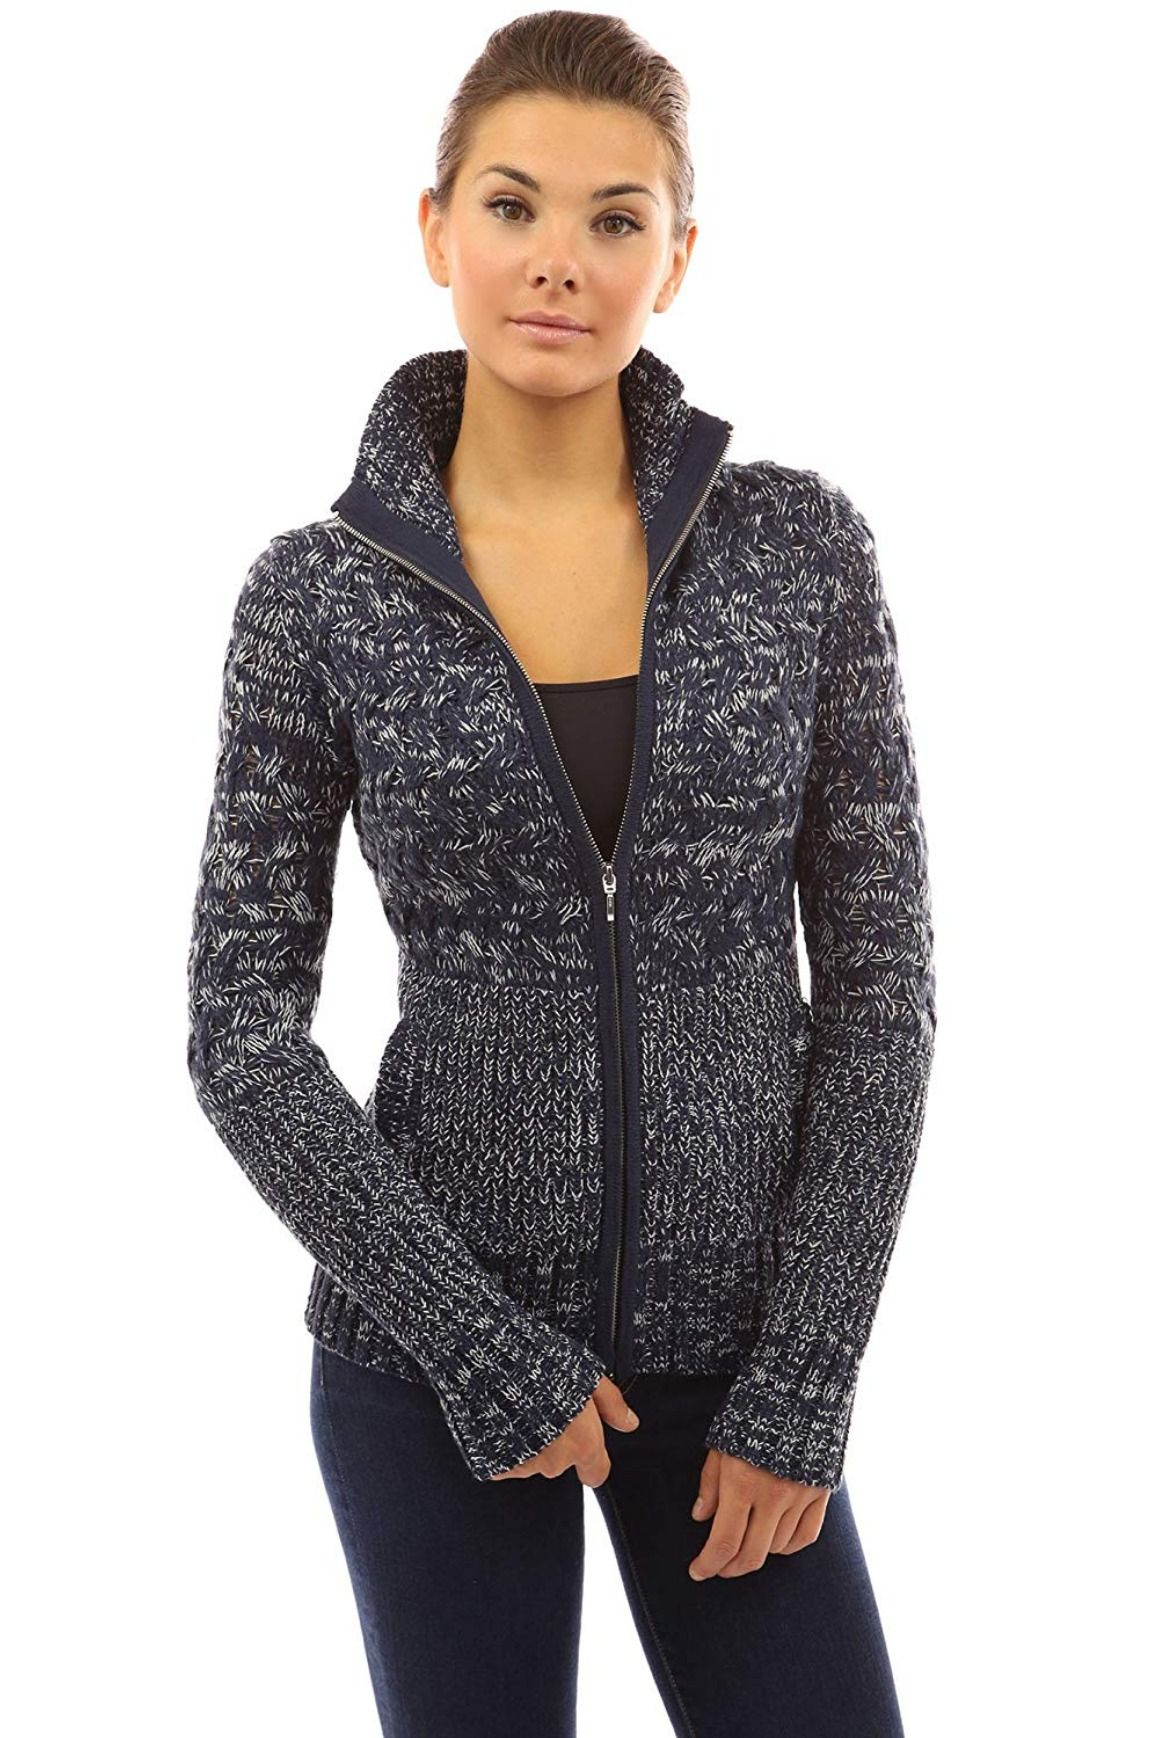 934da5c41413 PattyBoutik Women's Mock Neck Marled Zip Up Cardigan 4.1 out of 5 ...